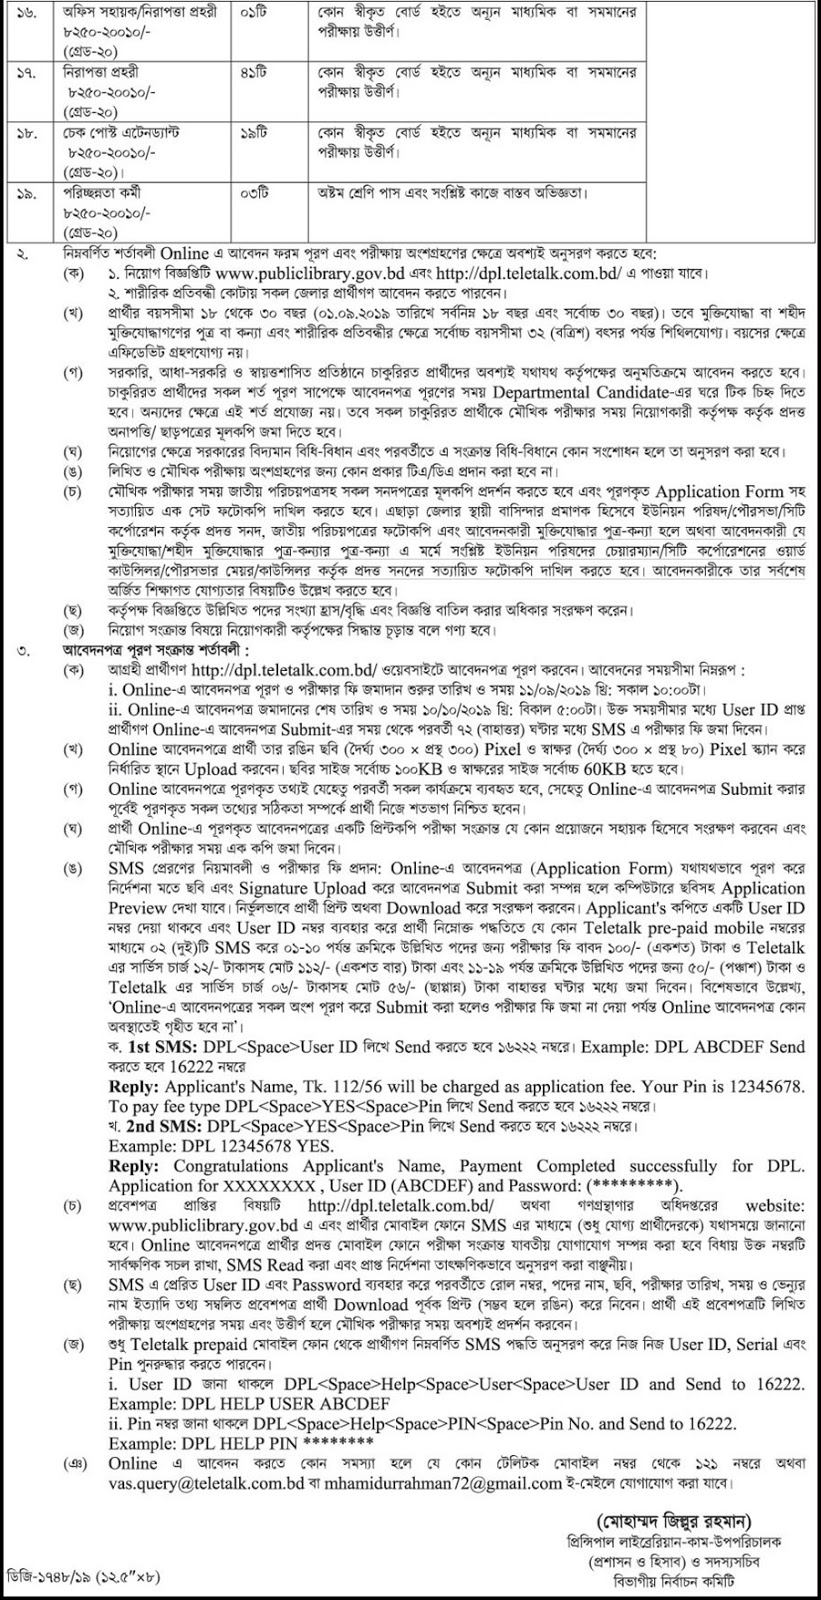 Department of Public Libraries Job Circular 2019